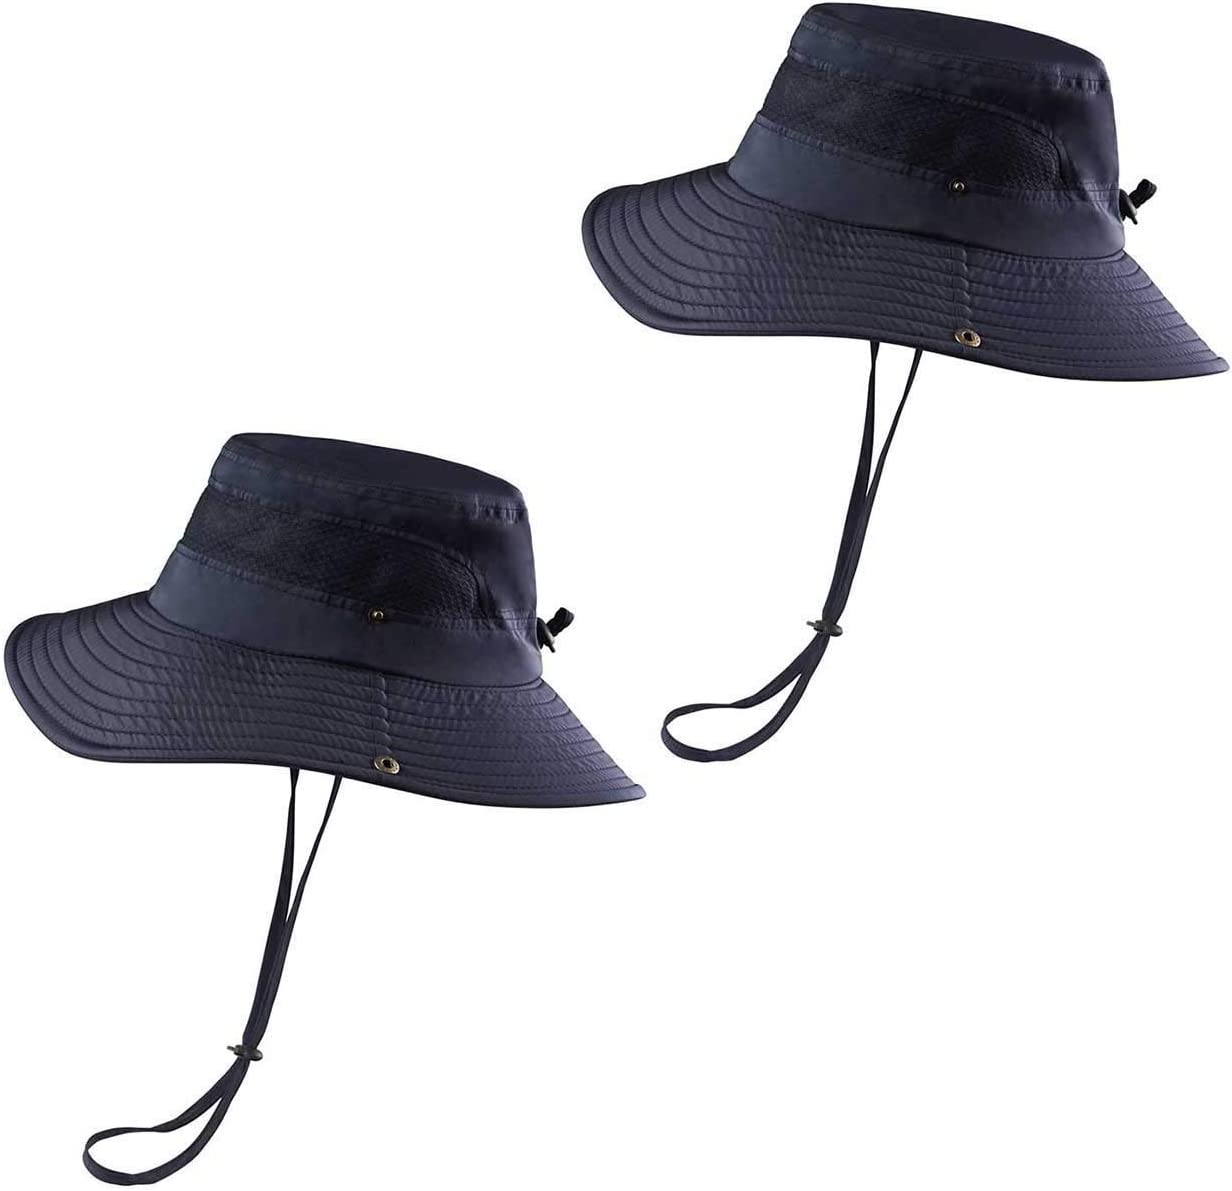 KOOLSOLY Breathable Wide Brim Challenge the lowest price of Japan ☆ Boonie Outdoor Hat UPF Waterproof New color